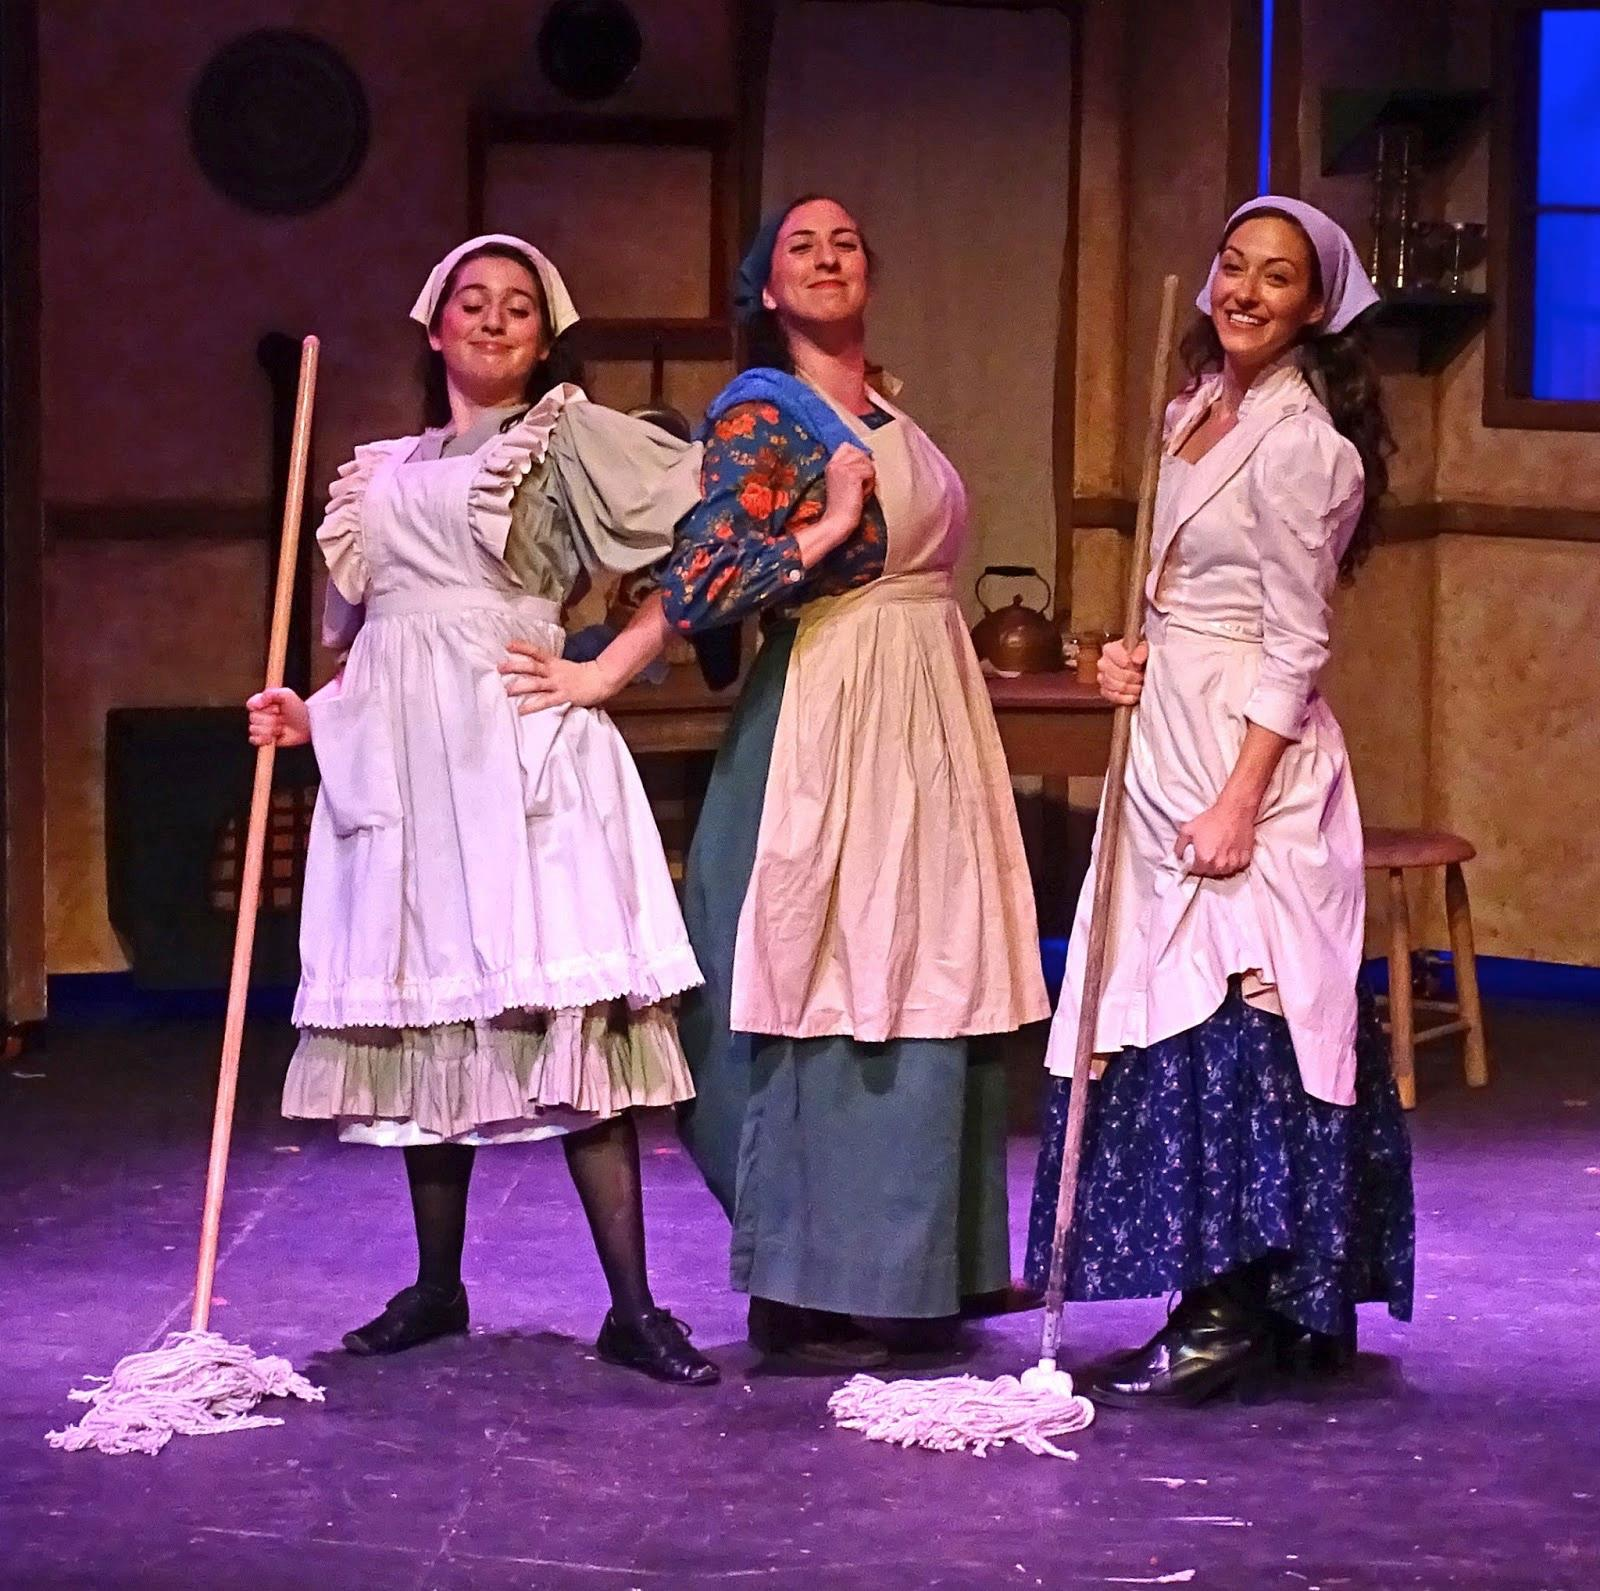 Fiddler on the Roof (Hodel) - Priscilla Beach Theatre, Plymouth, MA